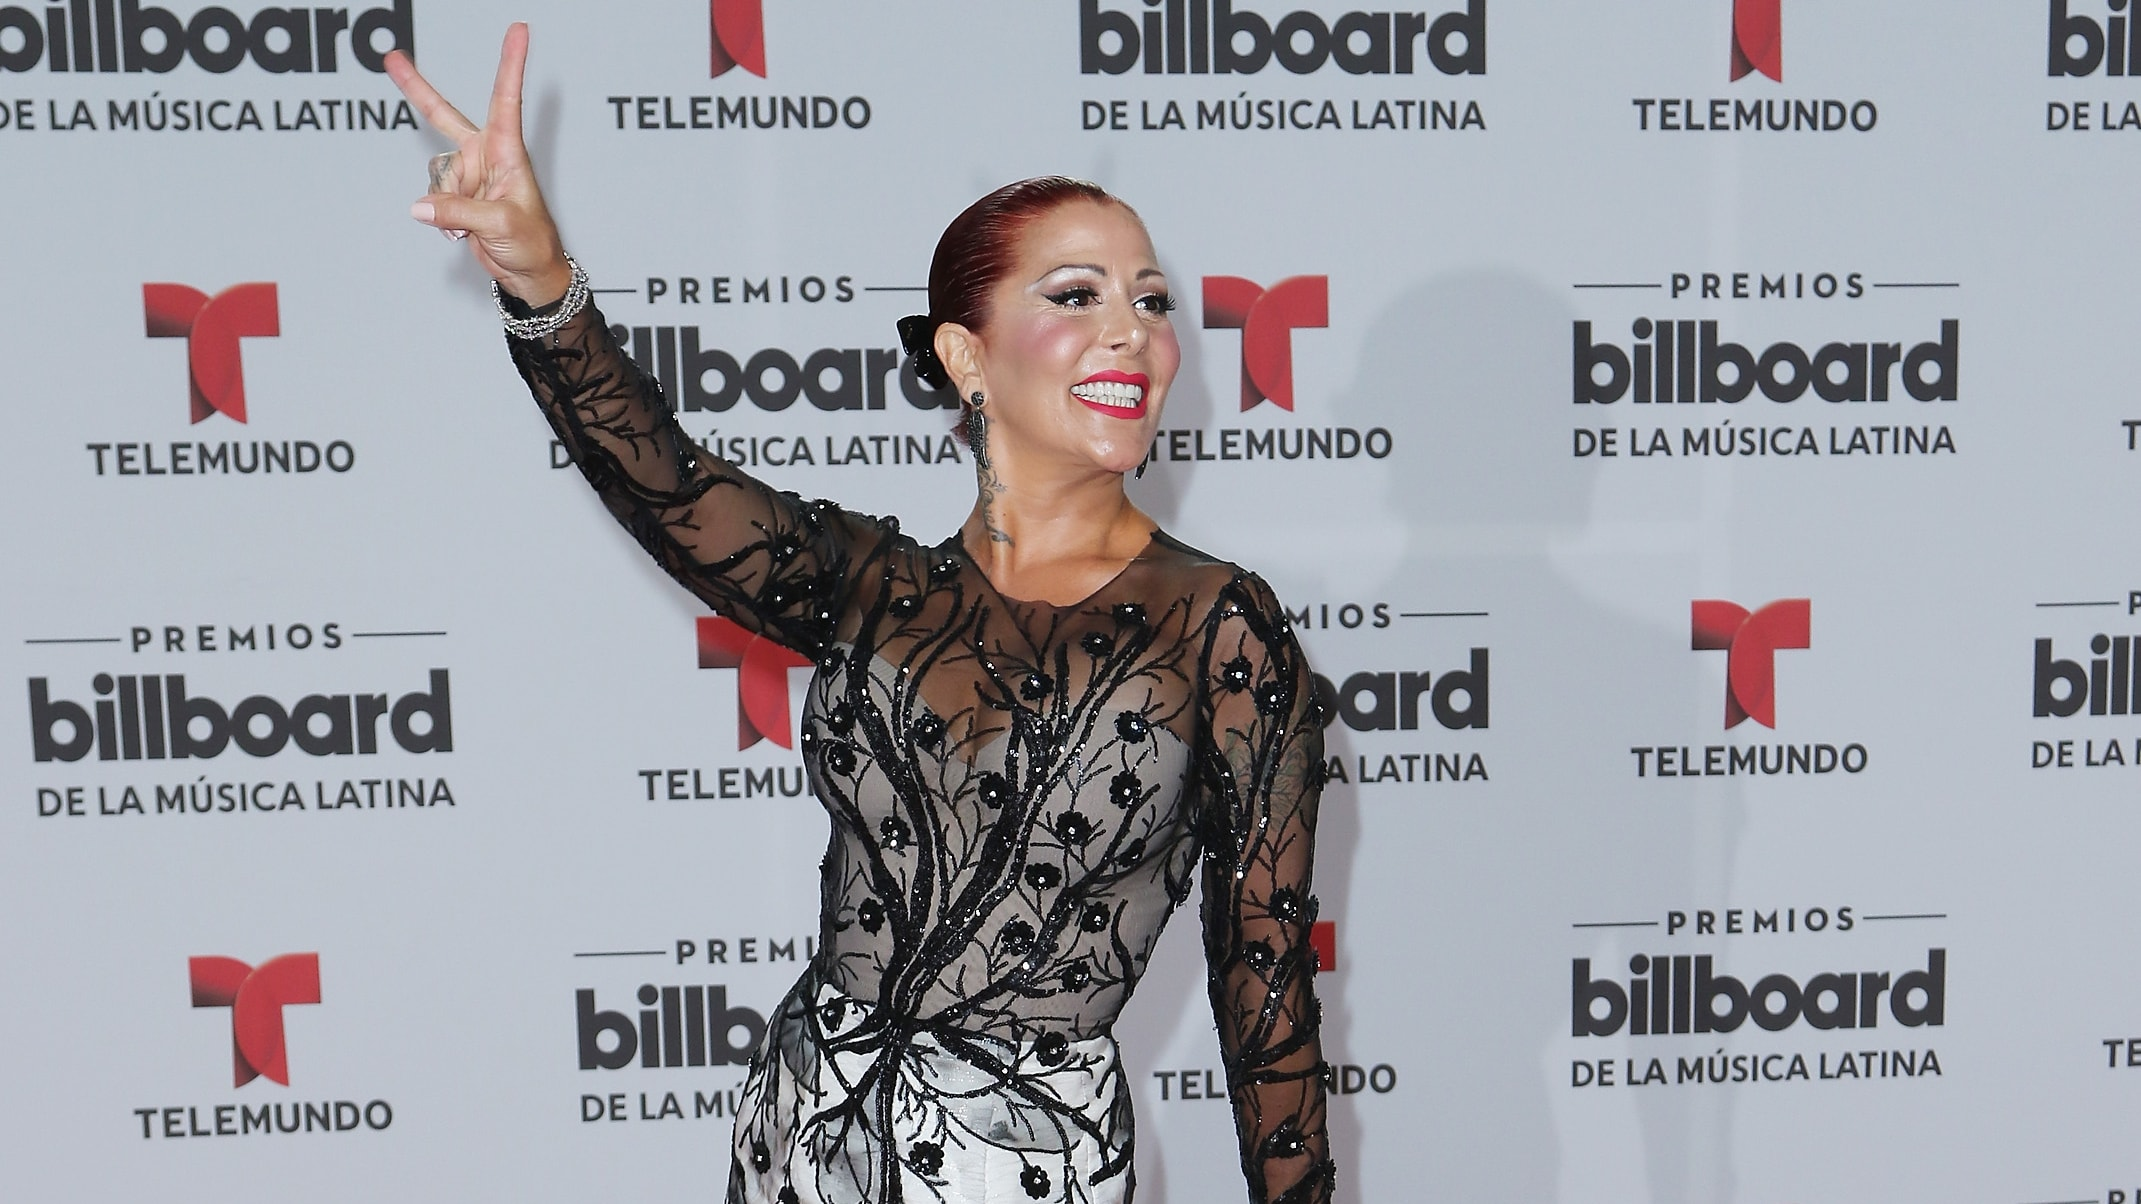 MIAMI, FL - APRIL 28:  Alejandra Guzman  attends the Billboard Latin Music Awards at Bank United Center on April 28, 2016 in Miami, Florida.  (Photo by Alexander Tamargo/Getty Images)